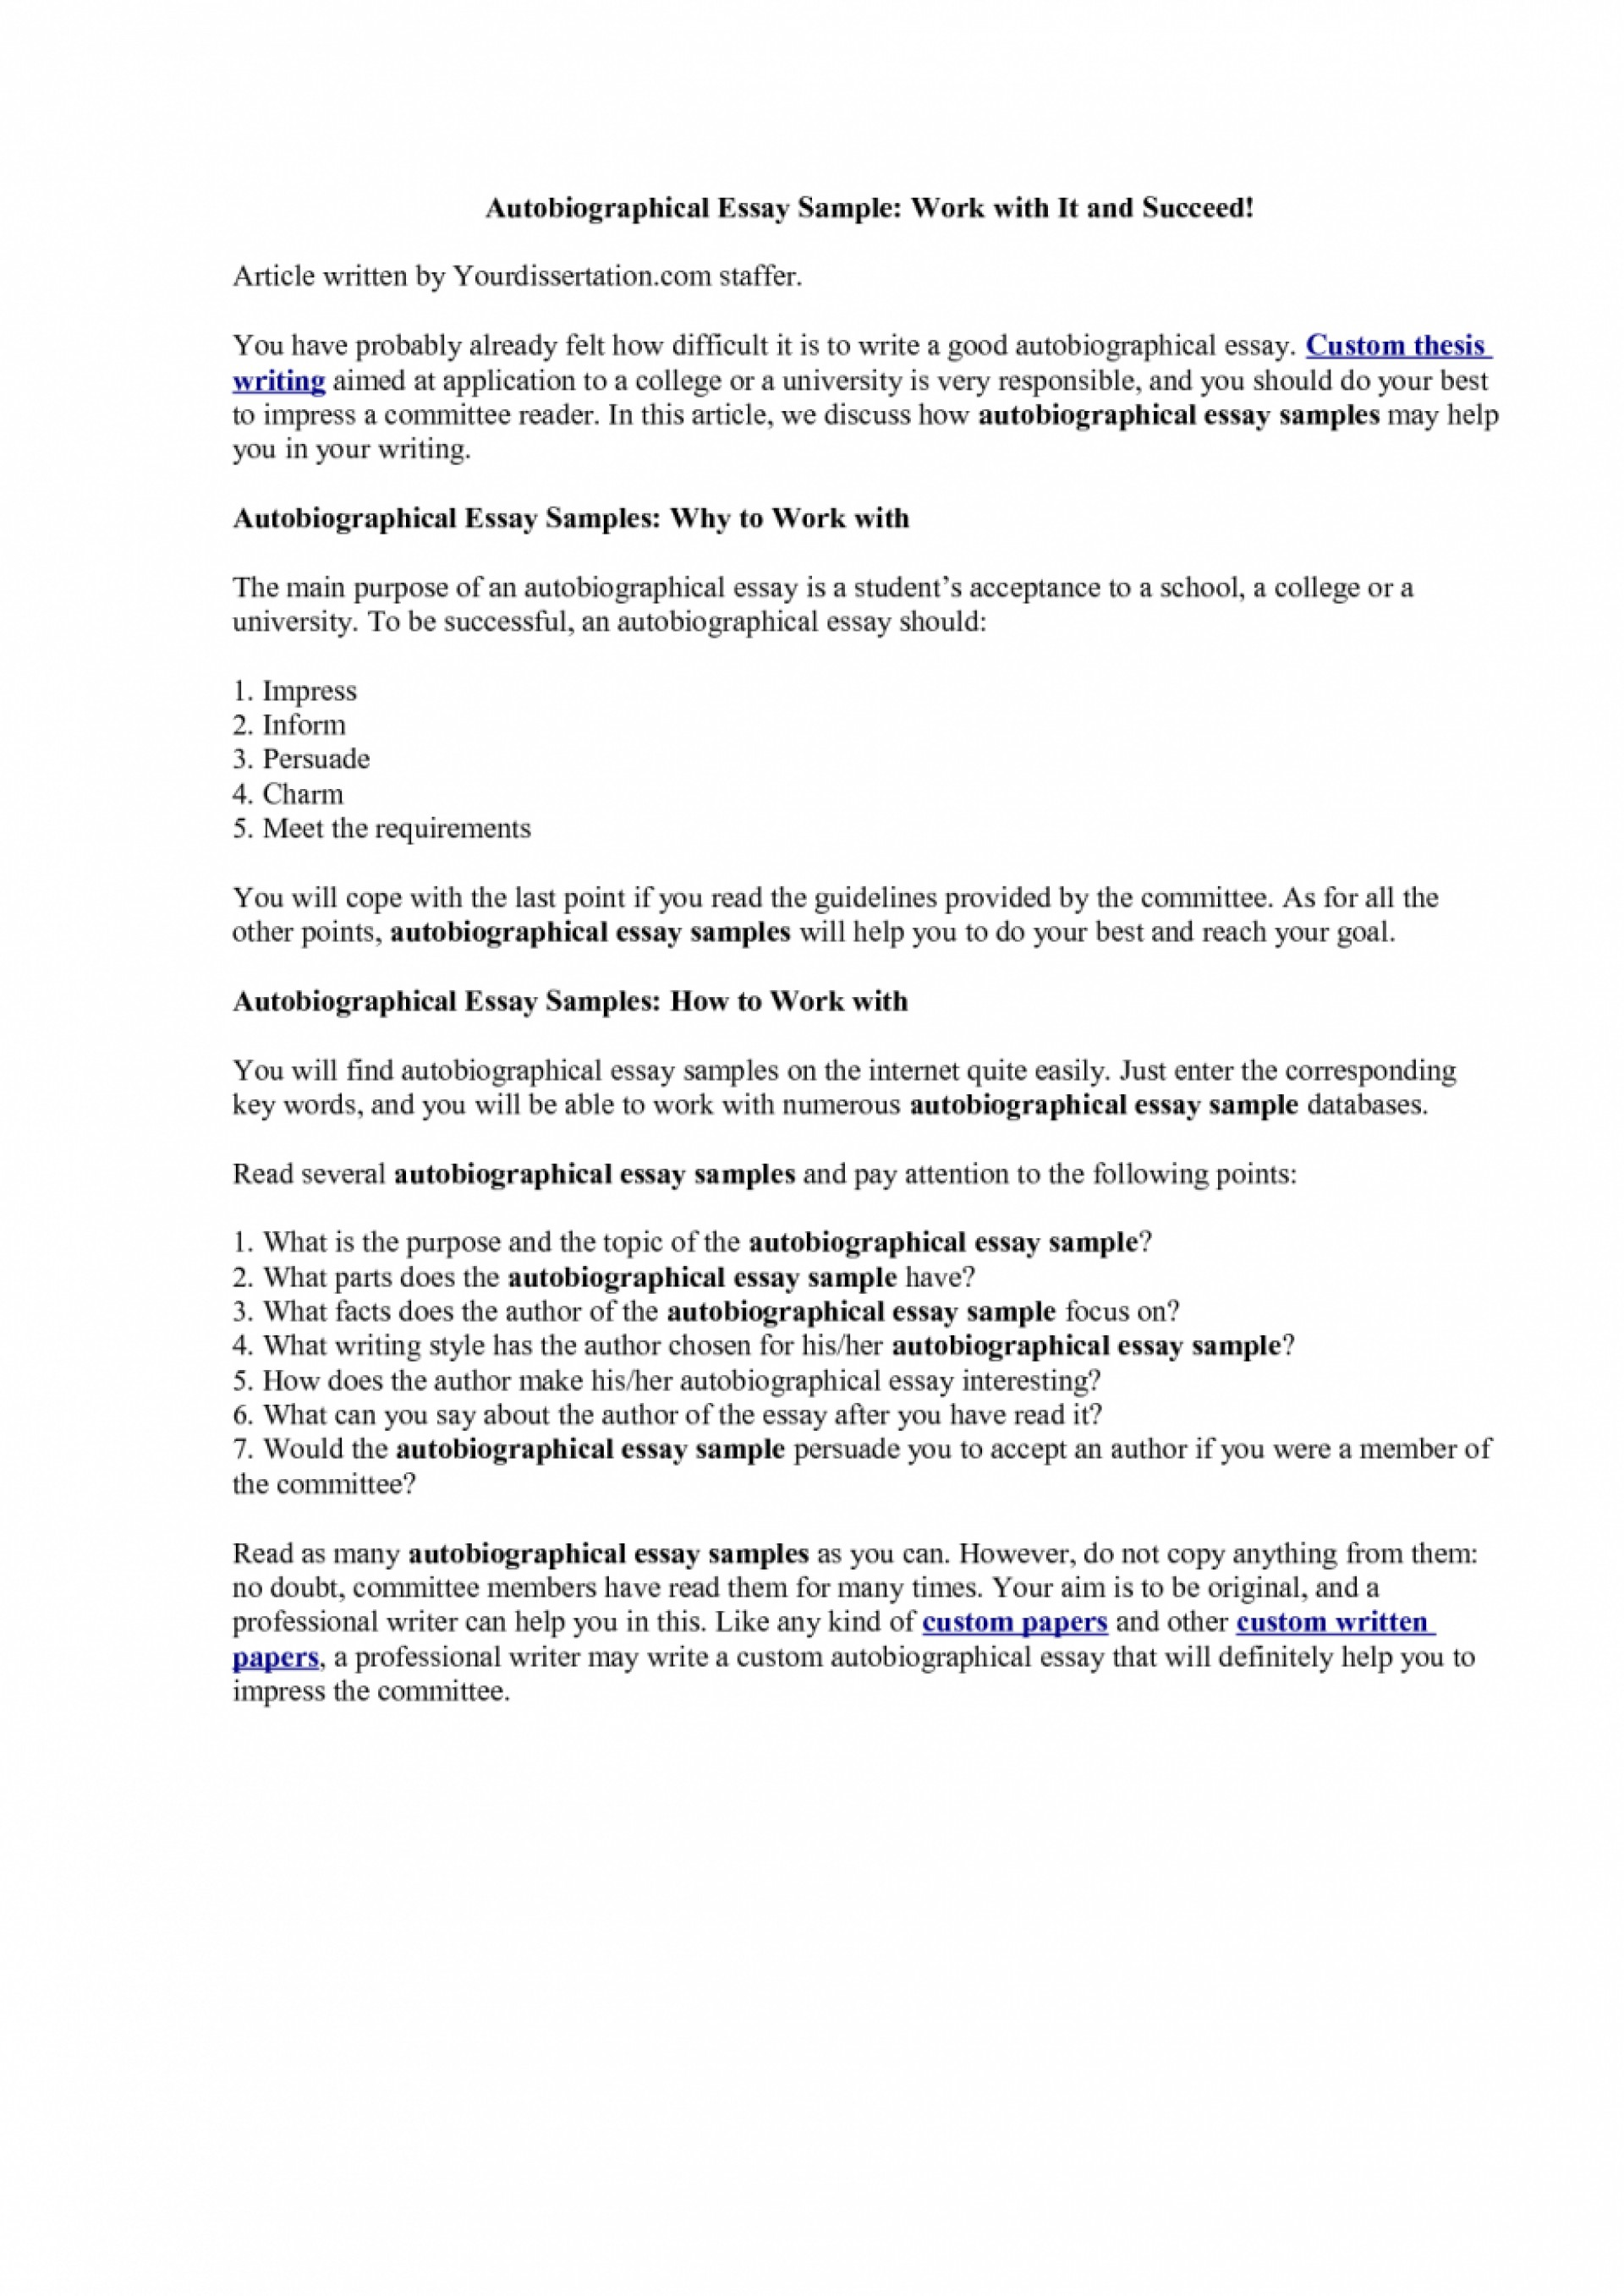 006 How To Start Autobiography Essay Example Autobiographical Examples For College Make Narrative Biographical On Myself Write Yourself Scholarship An Singular Annotated Bibliography A Good 1920